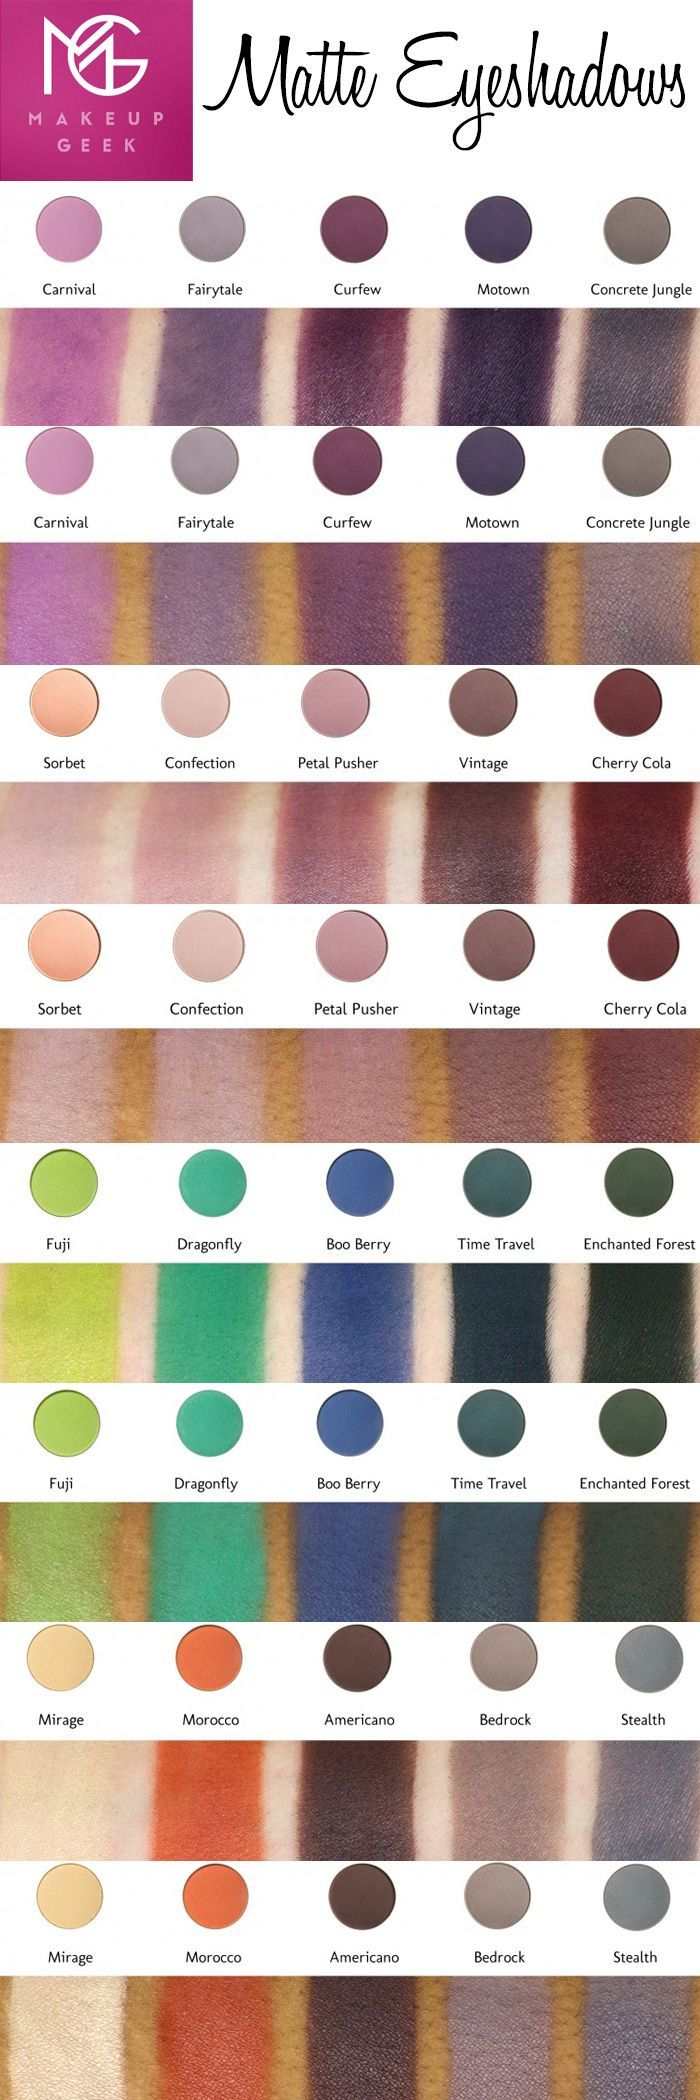 Makeup Geekjust launched 20 new and reformulated matte eyeshadows! I'm very excited by this because I love to use mattes with my hooded eyes!